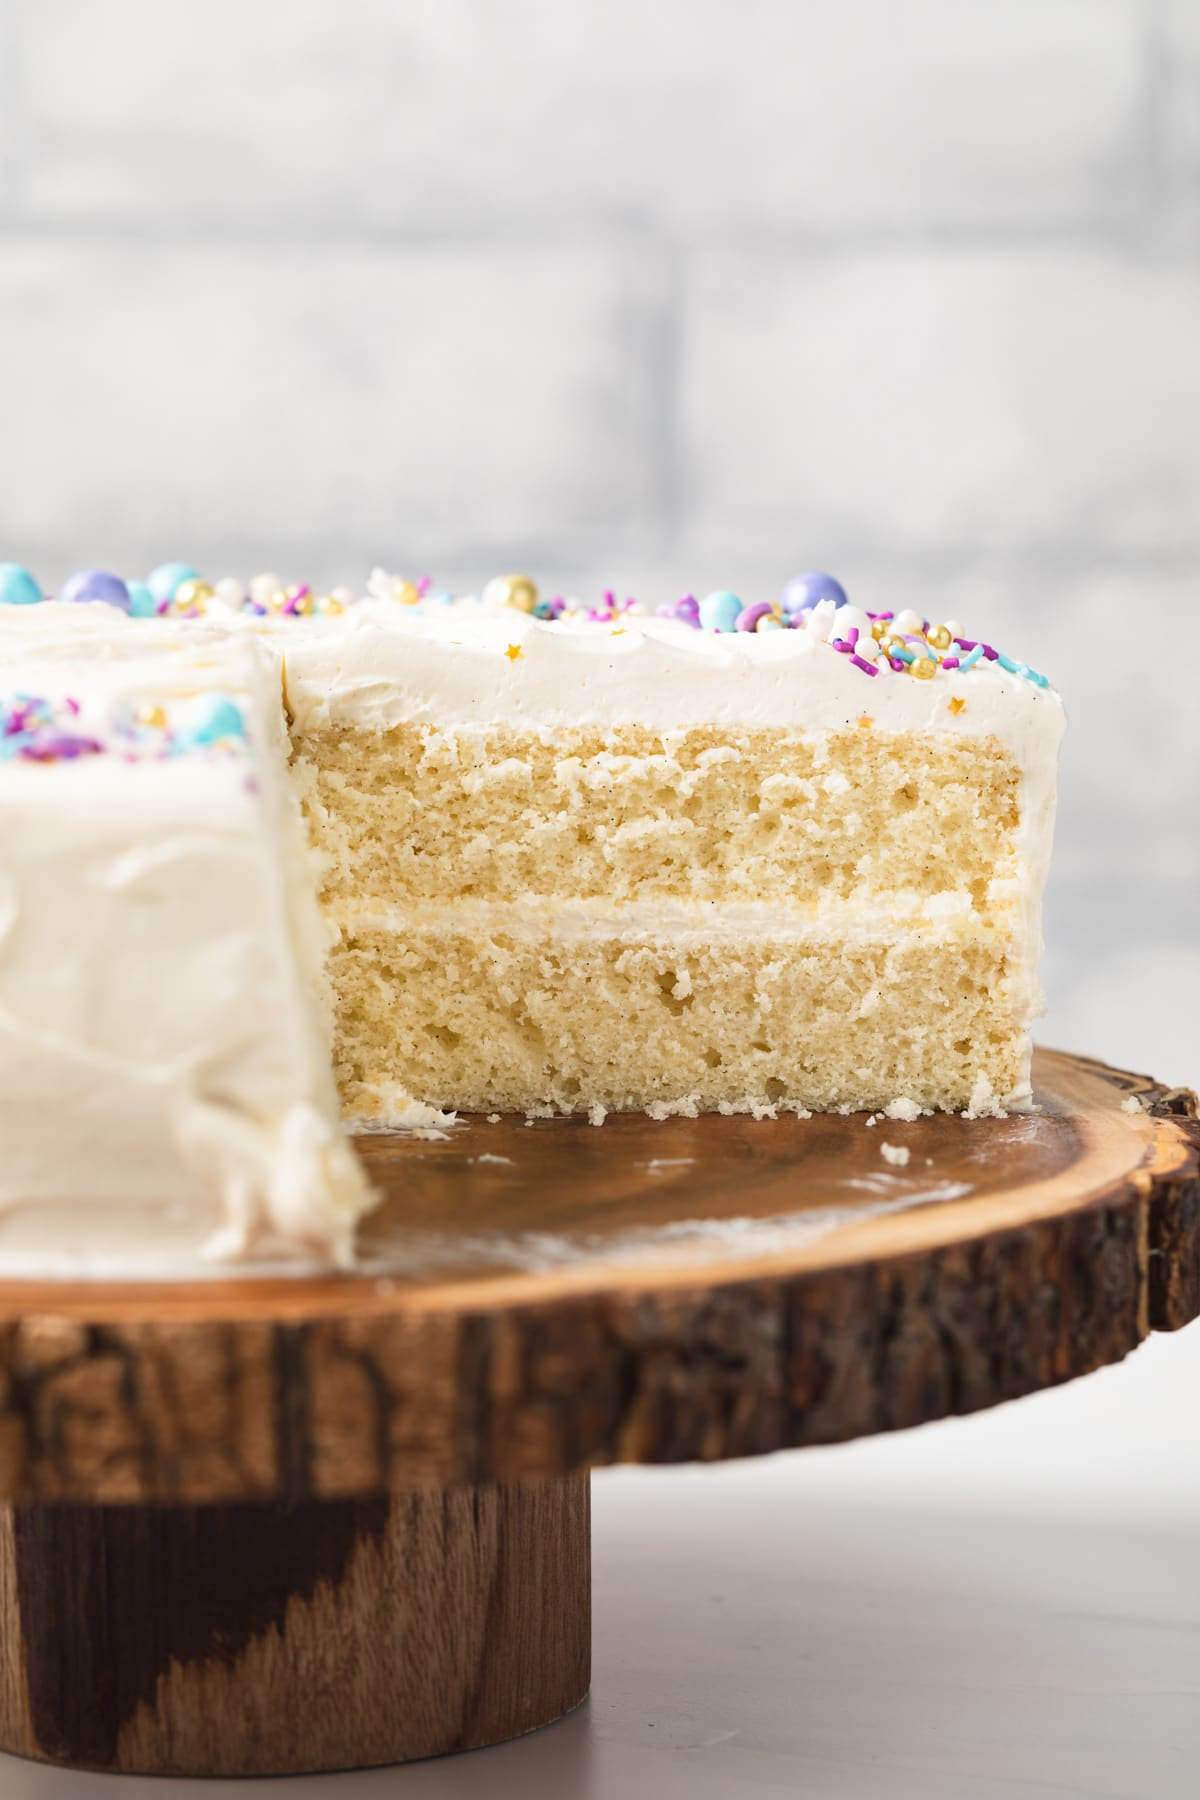 side view of a moist vanilla cake on wooded cake stand with a slice cut out